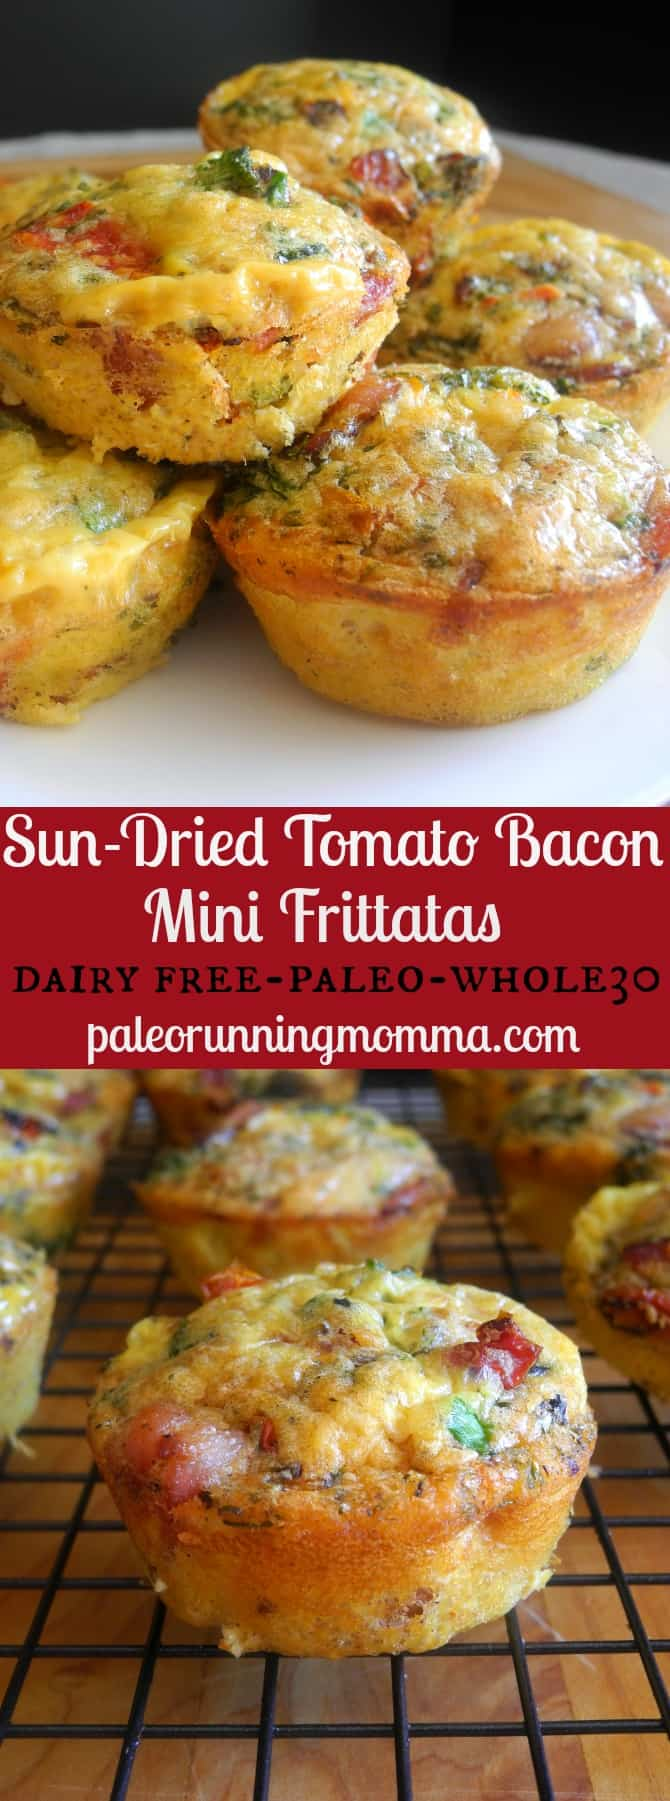 Sun-Dried Tomato Bacon Mini Frittatas #paleo #whole30 #lowcarb #dairyfree